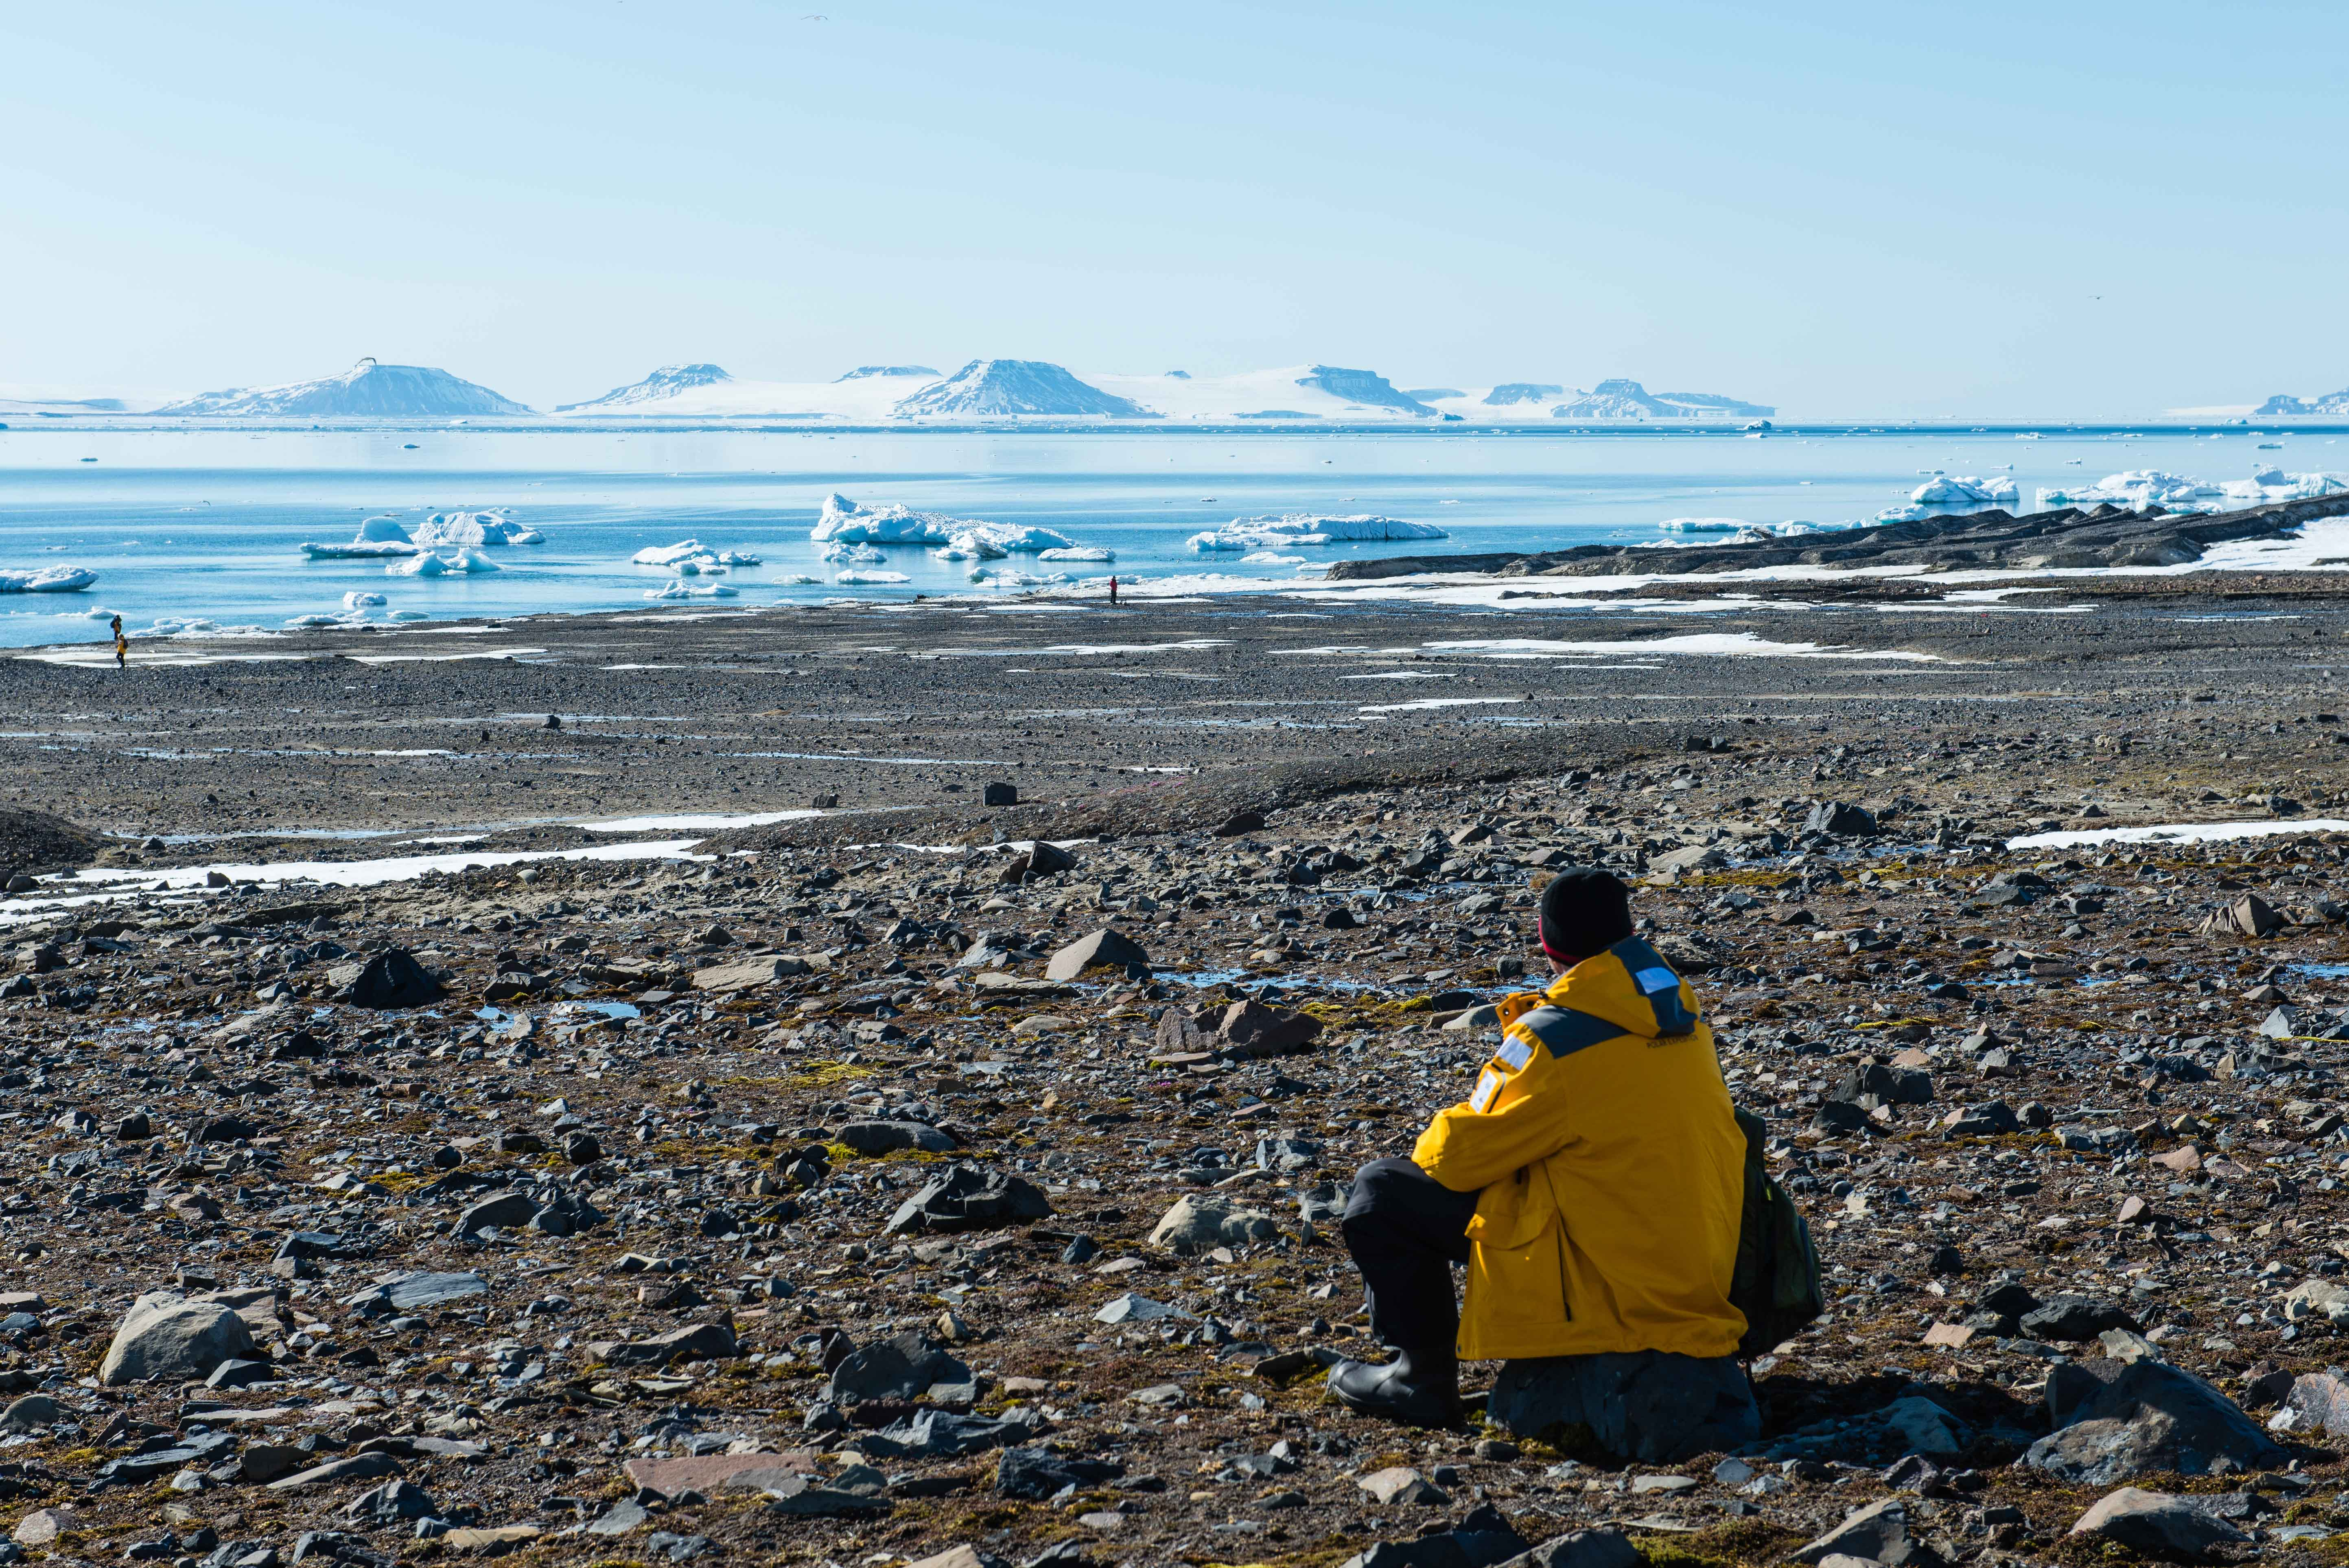 Antarctica - one of the trips you must book early